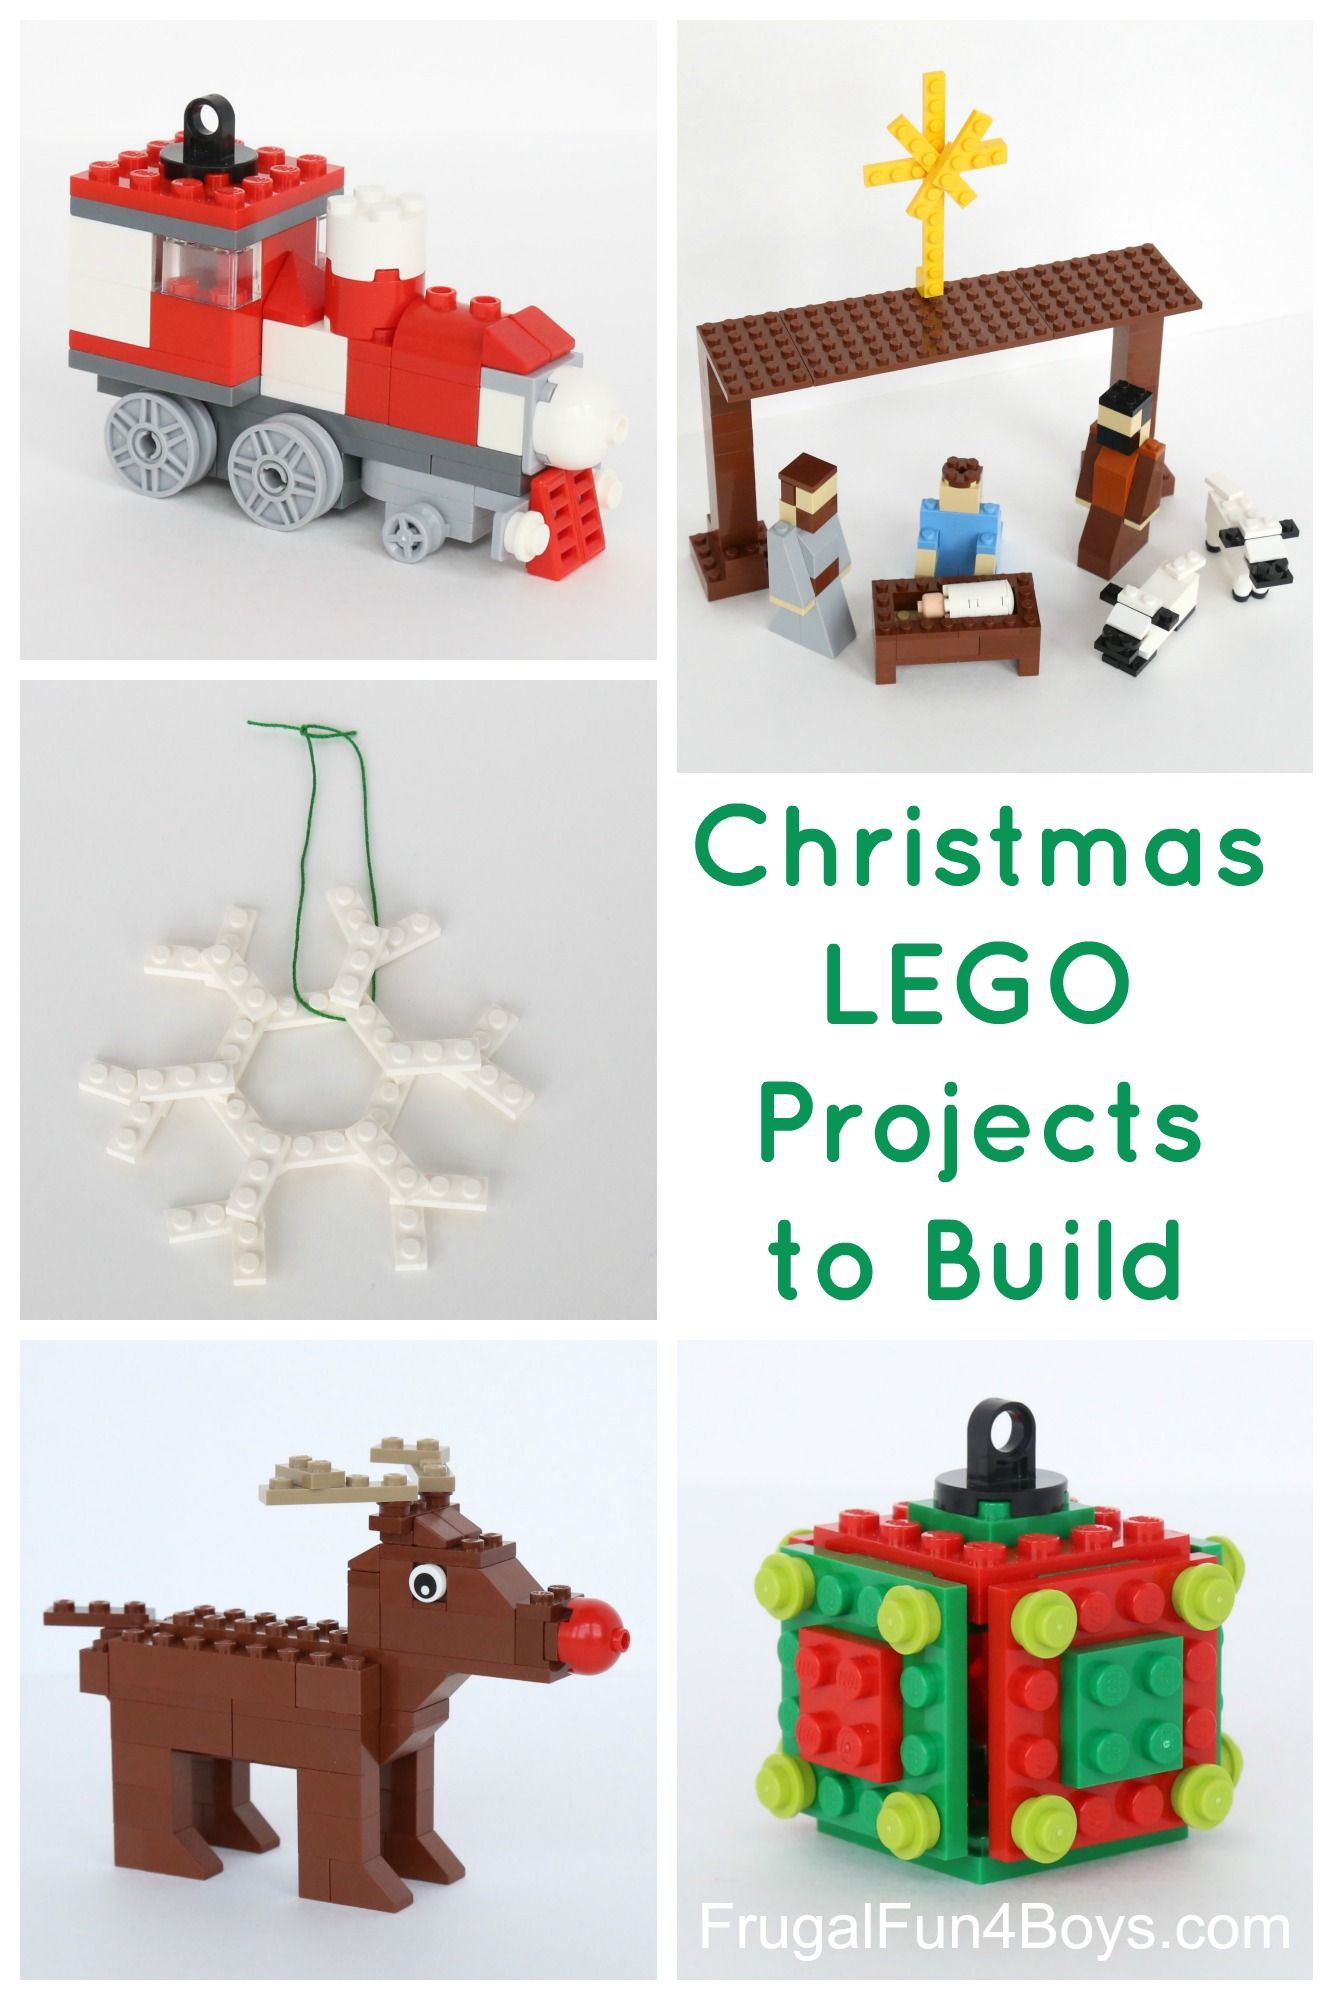 Five More Christmas Lego Projects To Build With Instructions Frugal Fun For Boys And Girls Lego Christmas Ornaments Train Ornament Lego Projects